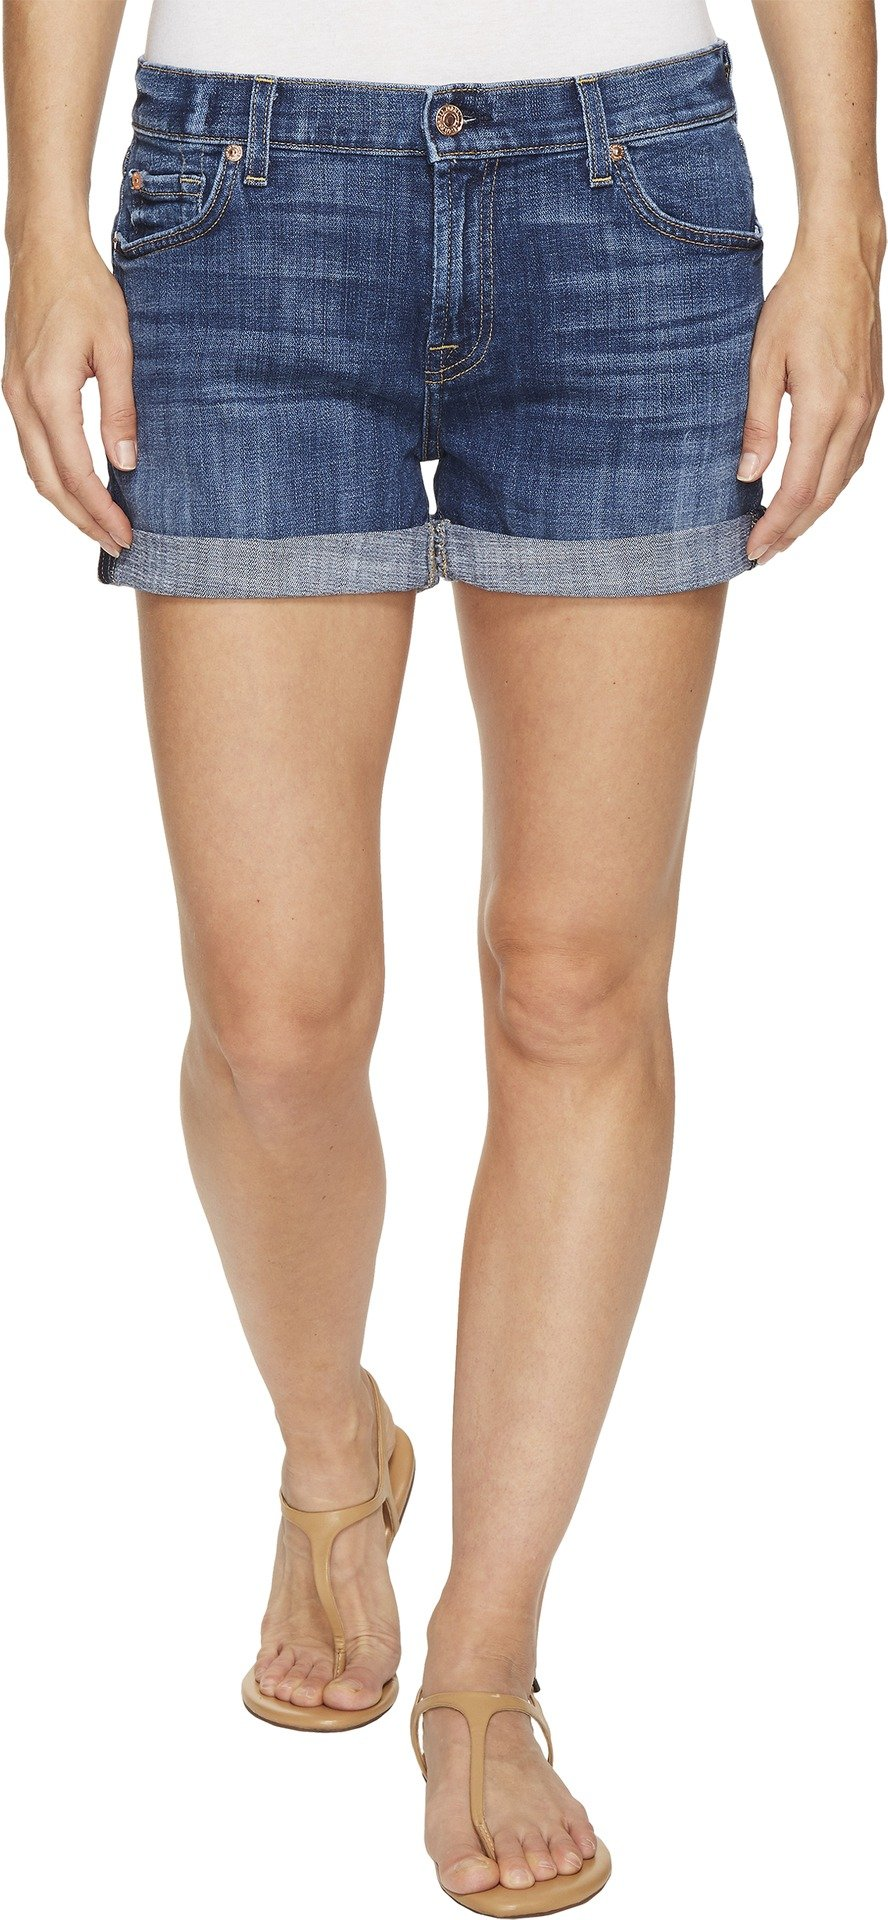 7 For All Mankind Women's Relaxed Mid Roll Shorts, Barrier Reef Broken Twill, 27